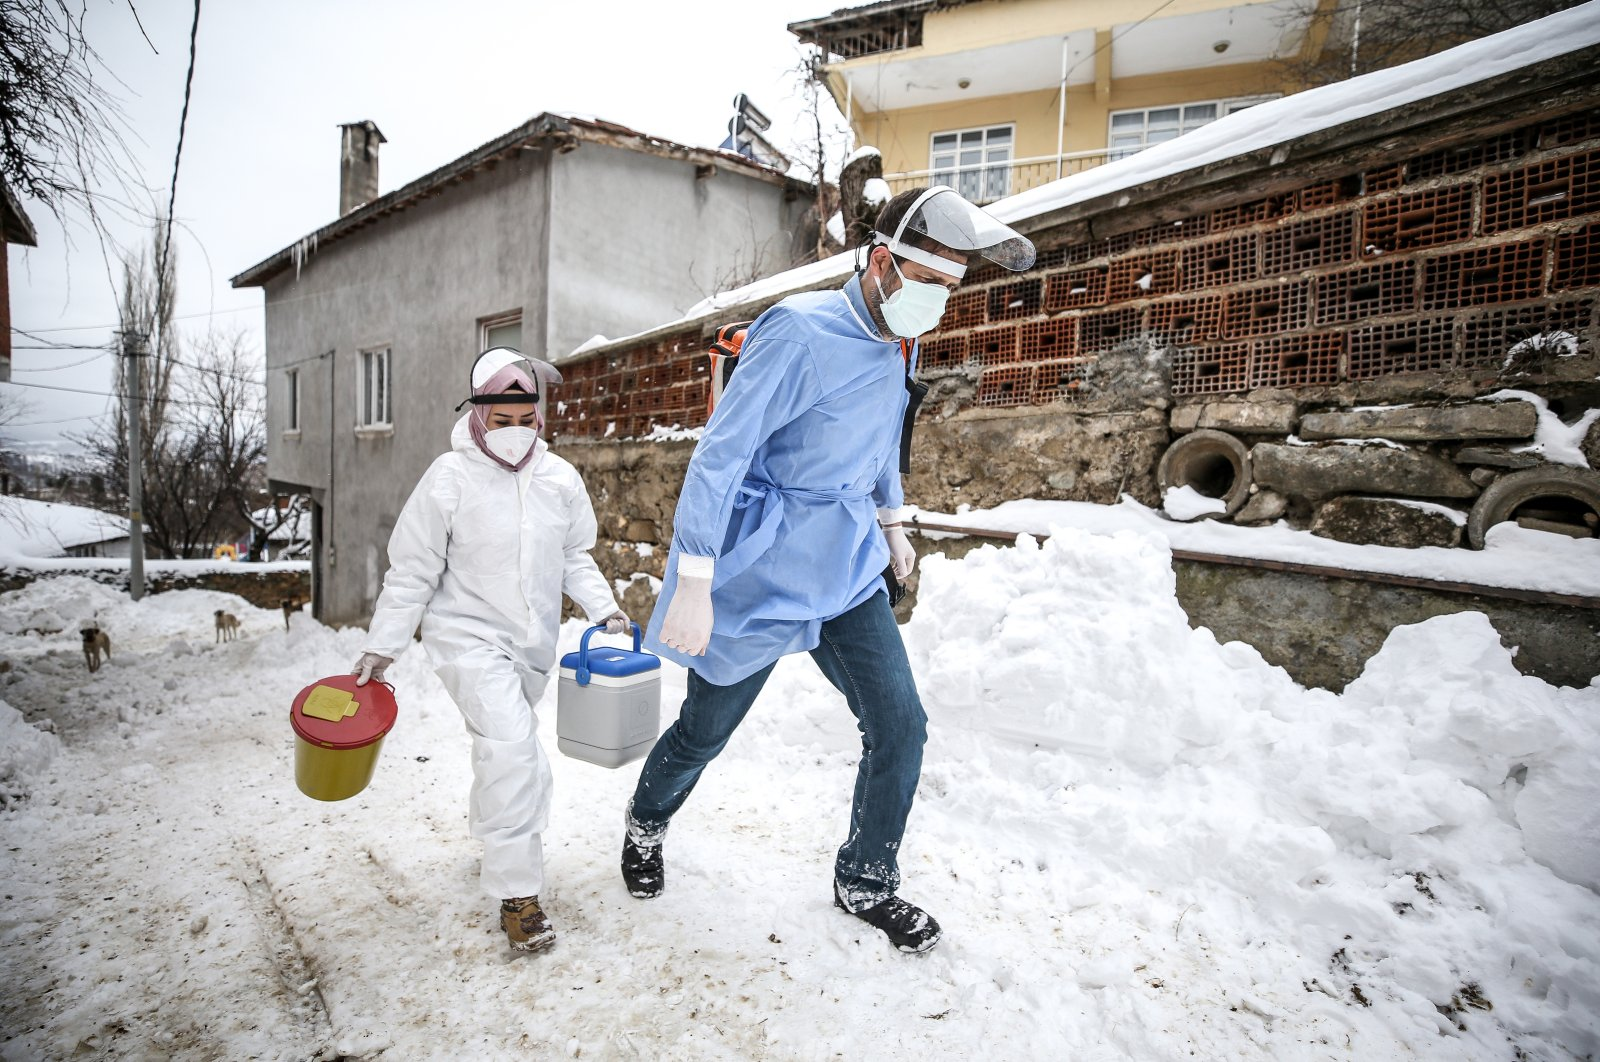 Health care workers walk on a snow-covered street to vaccinate people at home, in Bursa, northwestern Turkey, Feb. 19, 2021. (AA Photo)